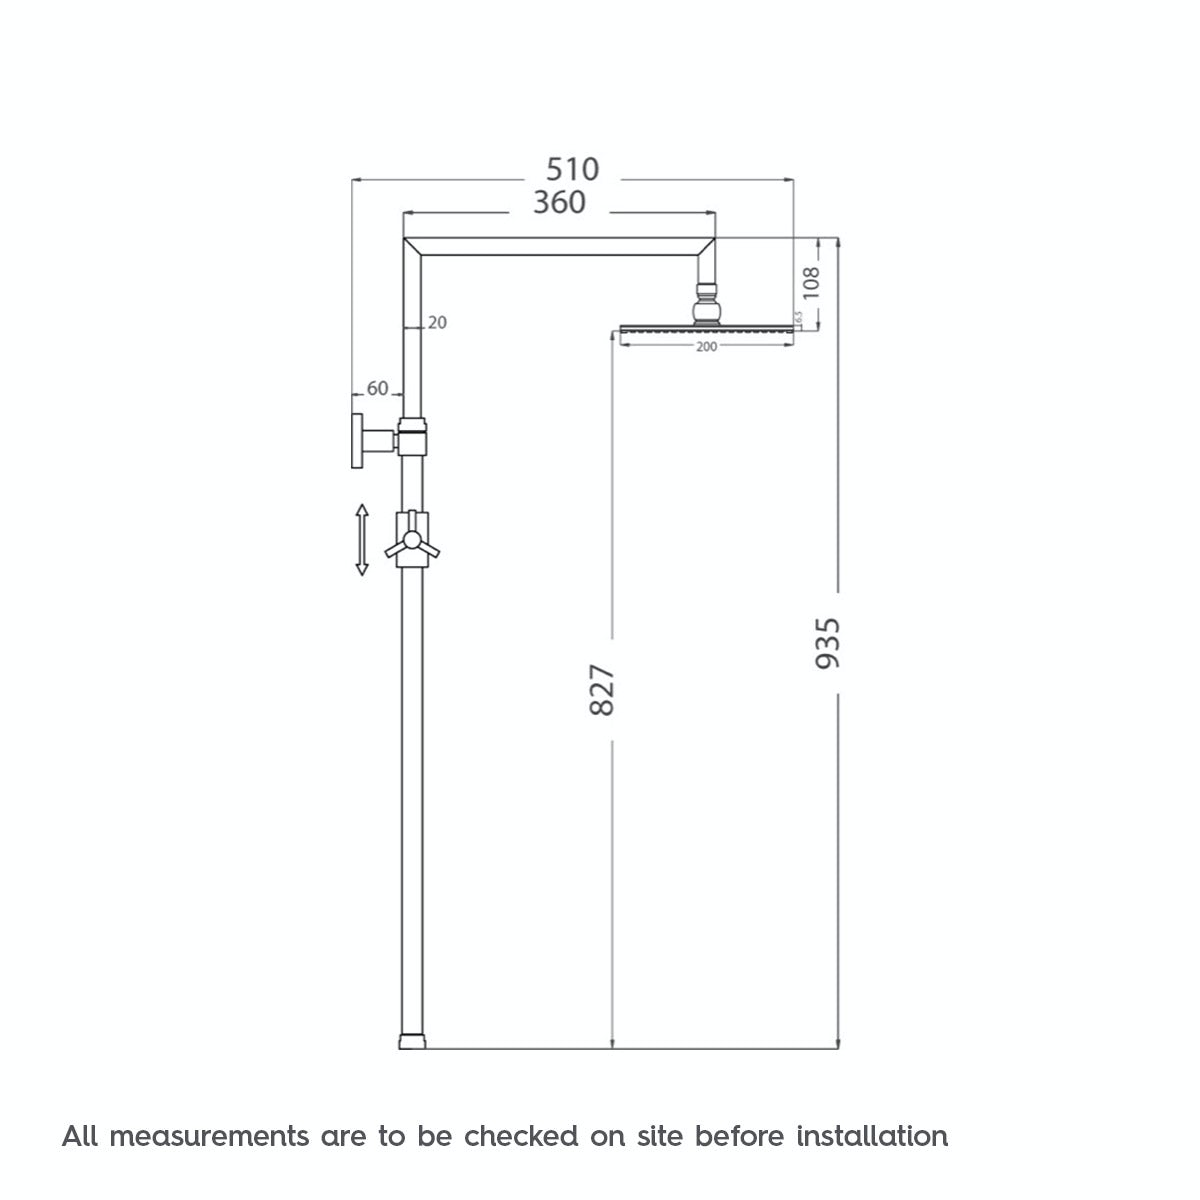 Dimensions for Orchard Minimalist waifer round shower riser system